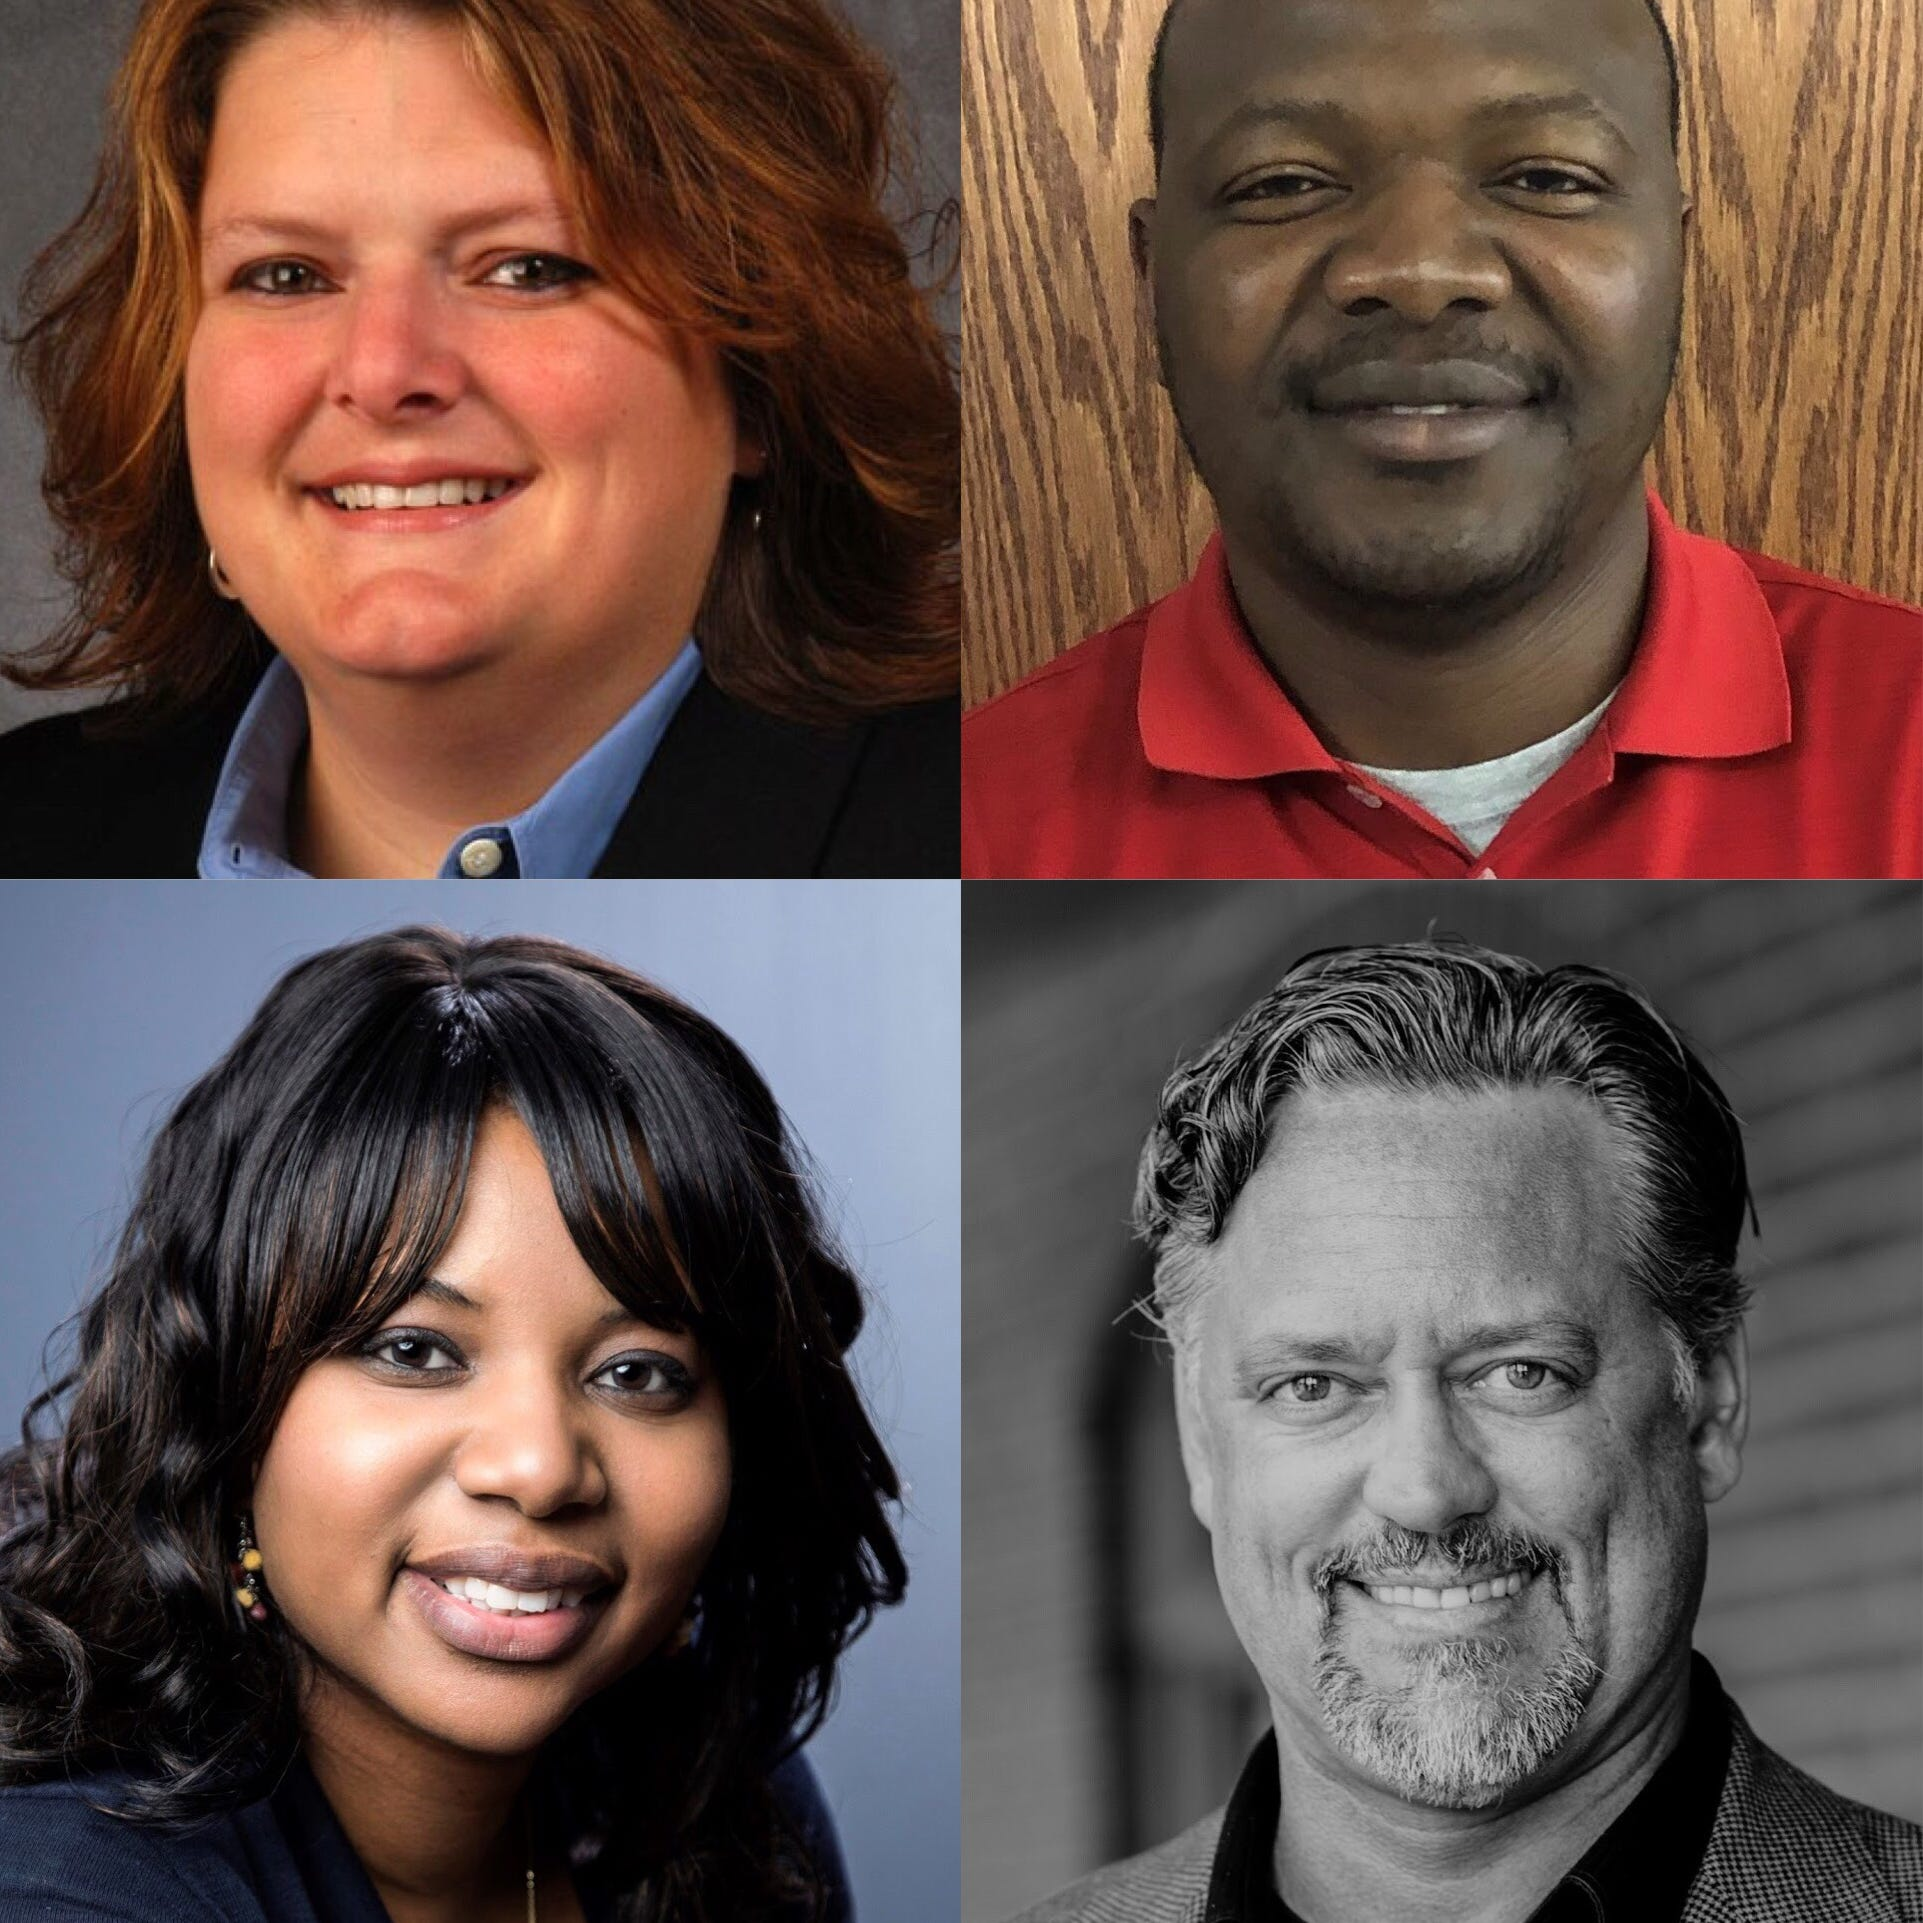 Meet the candidates in North Liberty's special election